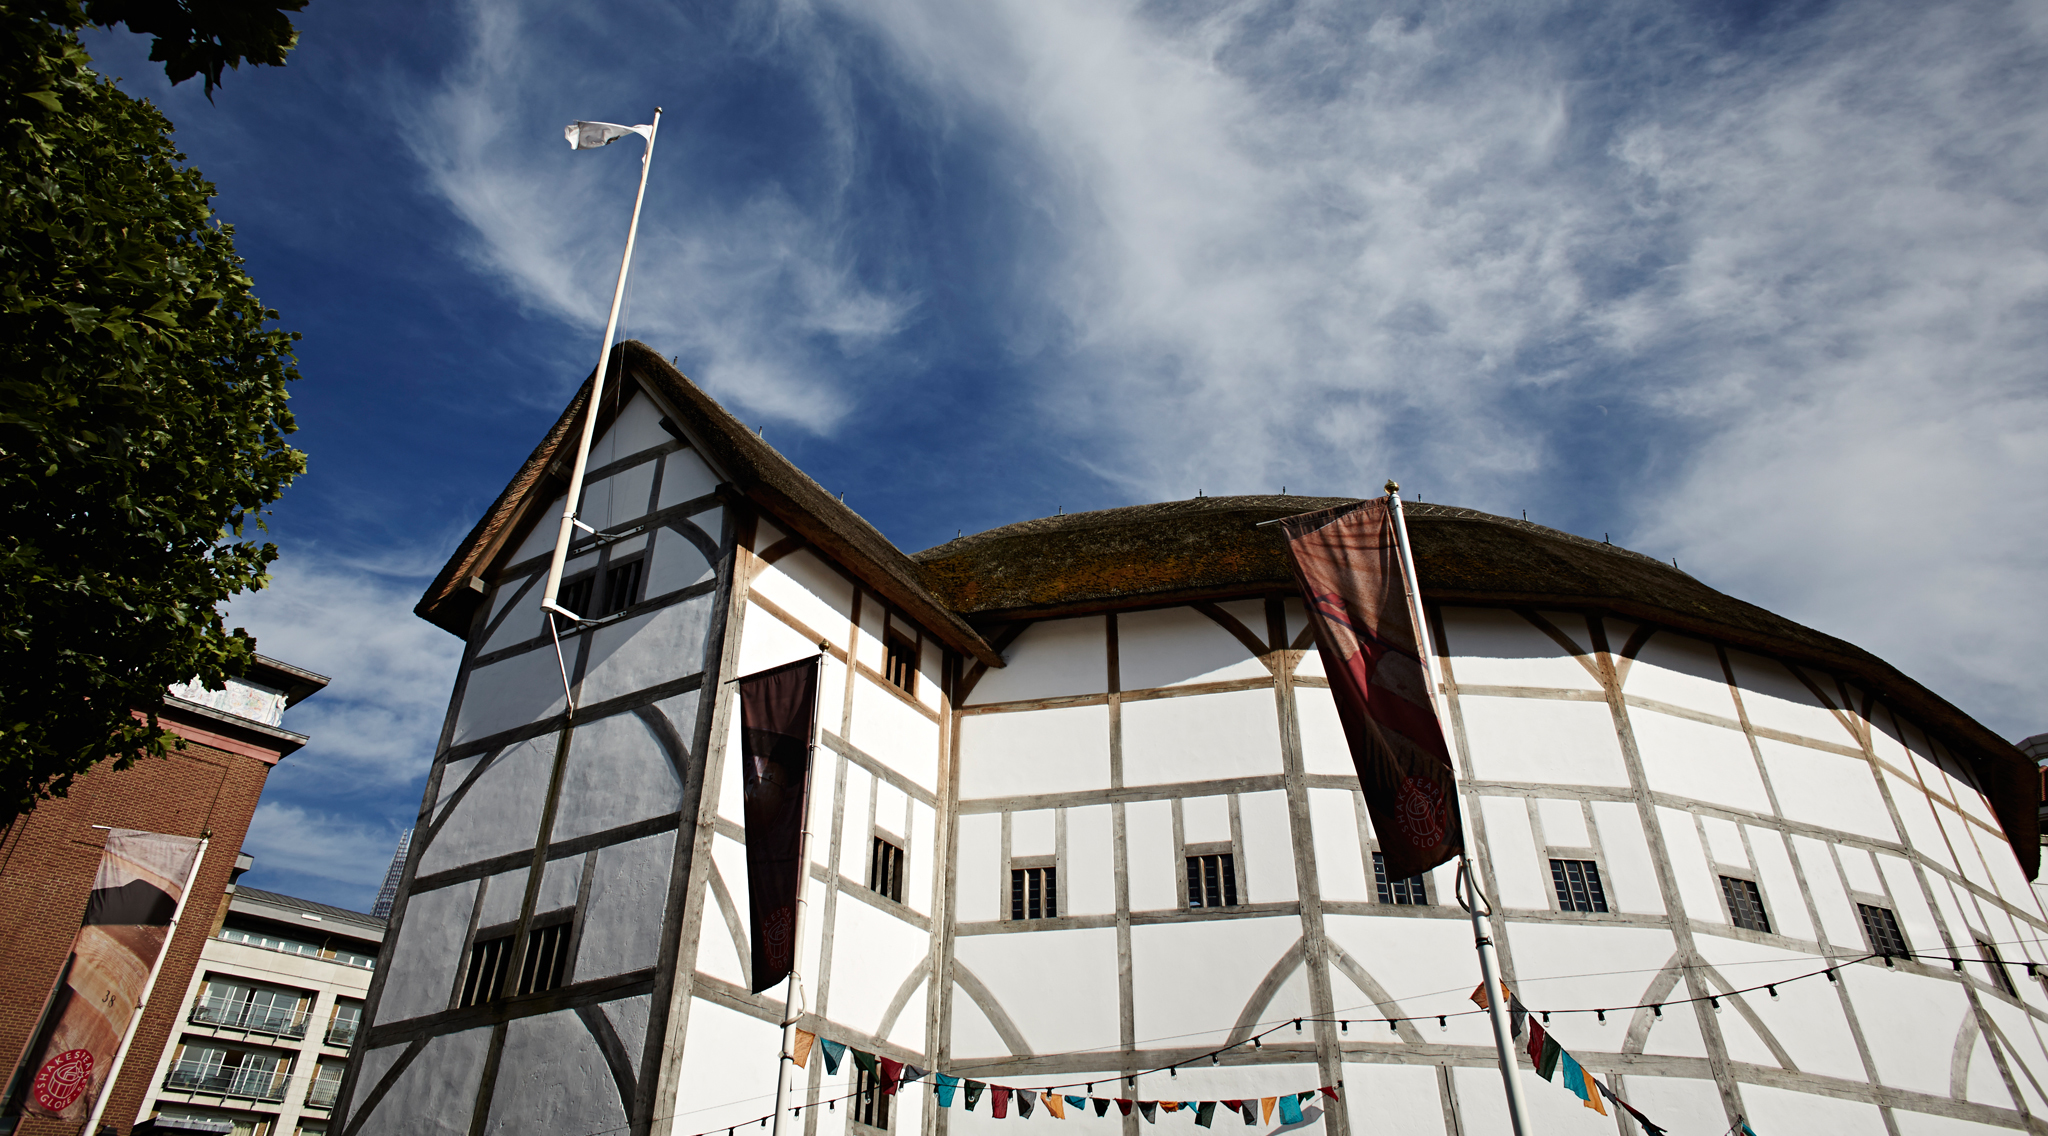 Watch a Midnight Matinee at Shakespeare's Globe